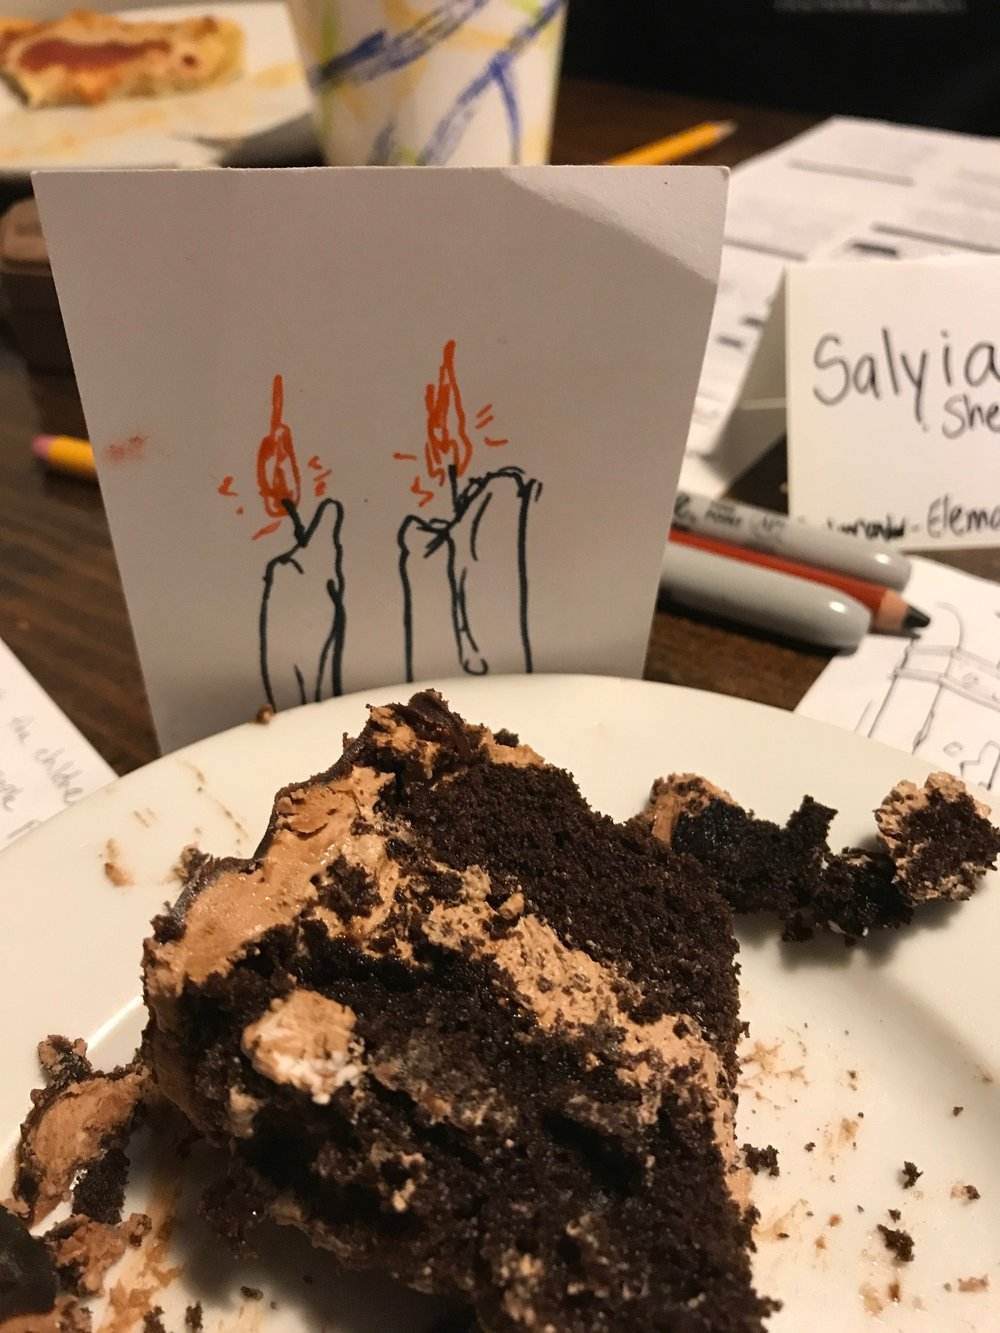 I bought the last two slices of their delicious chocolate cake to share among the participants. Thanks David for those amazing candles!